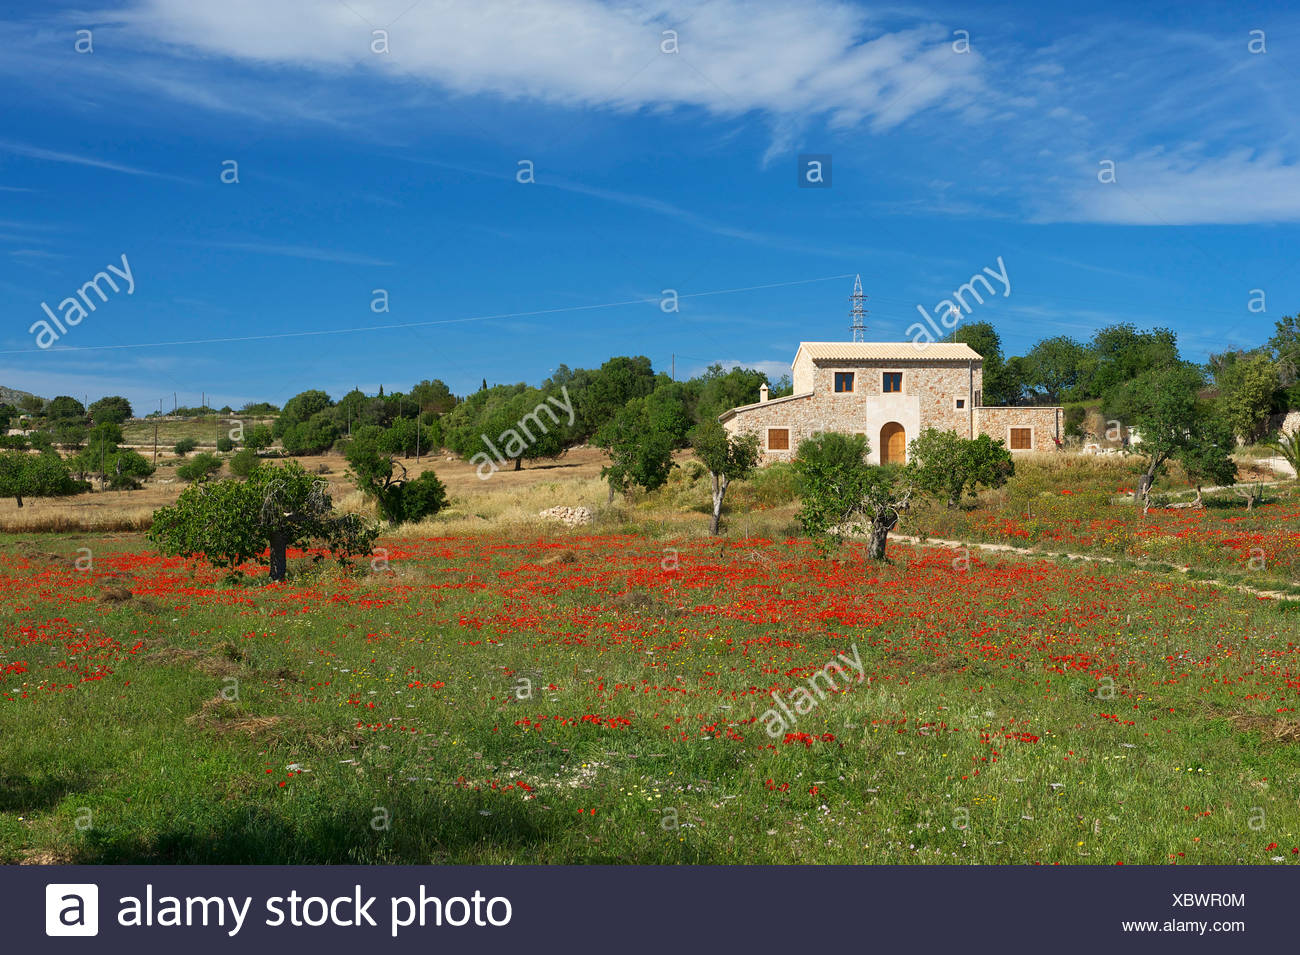 Balearic Islands, Majorca, Mallorca, Spain, Europe, outside, Finca, Fincas, country house, country houses, poppy blossom, scener - Stock Image